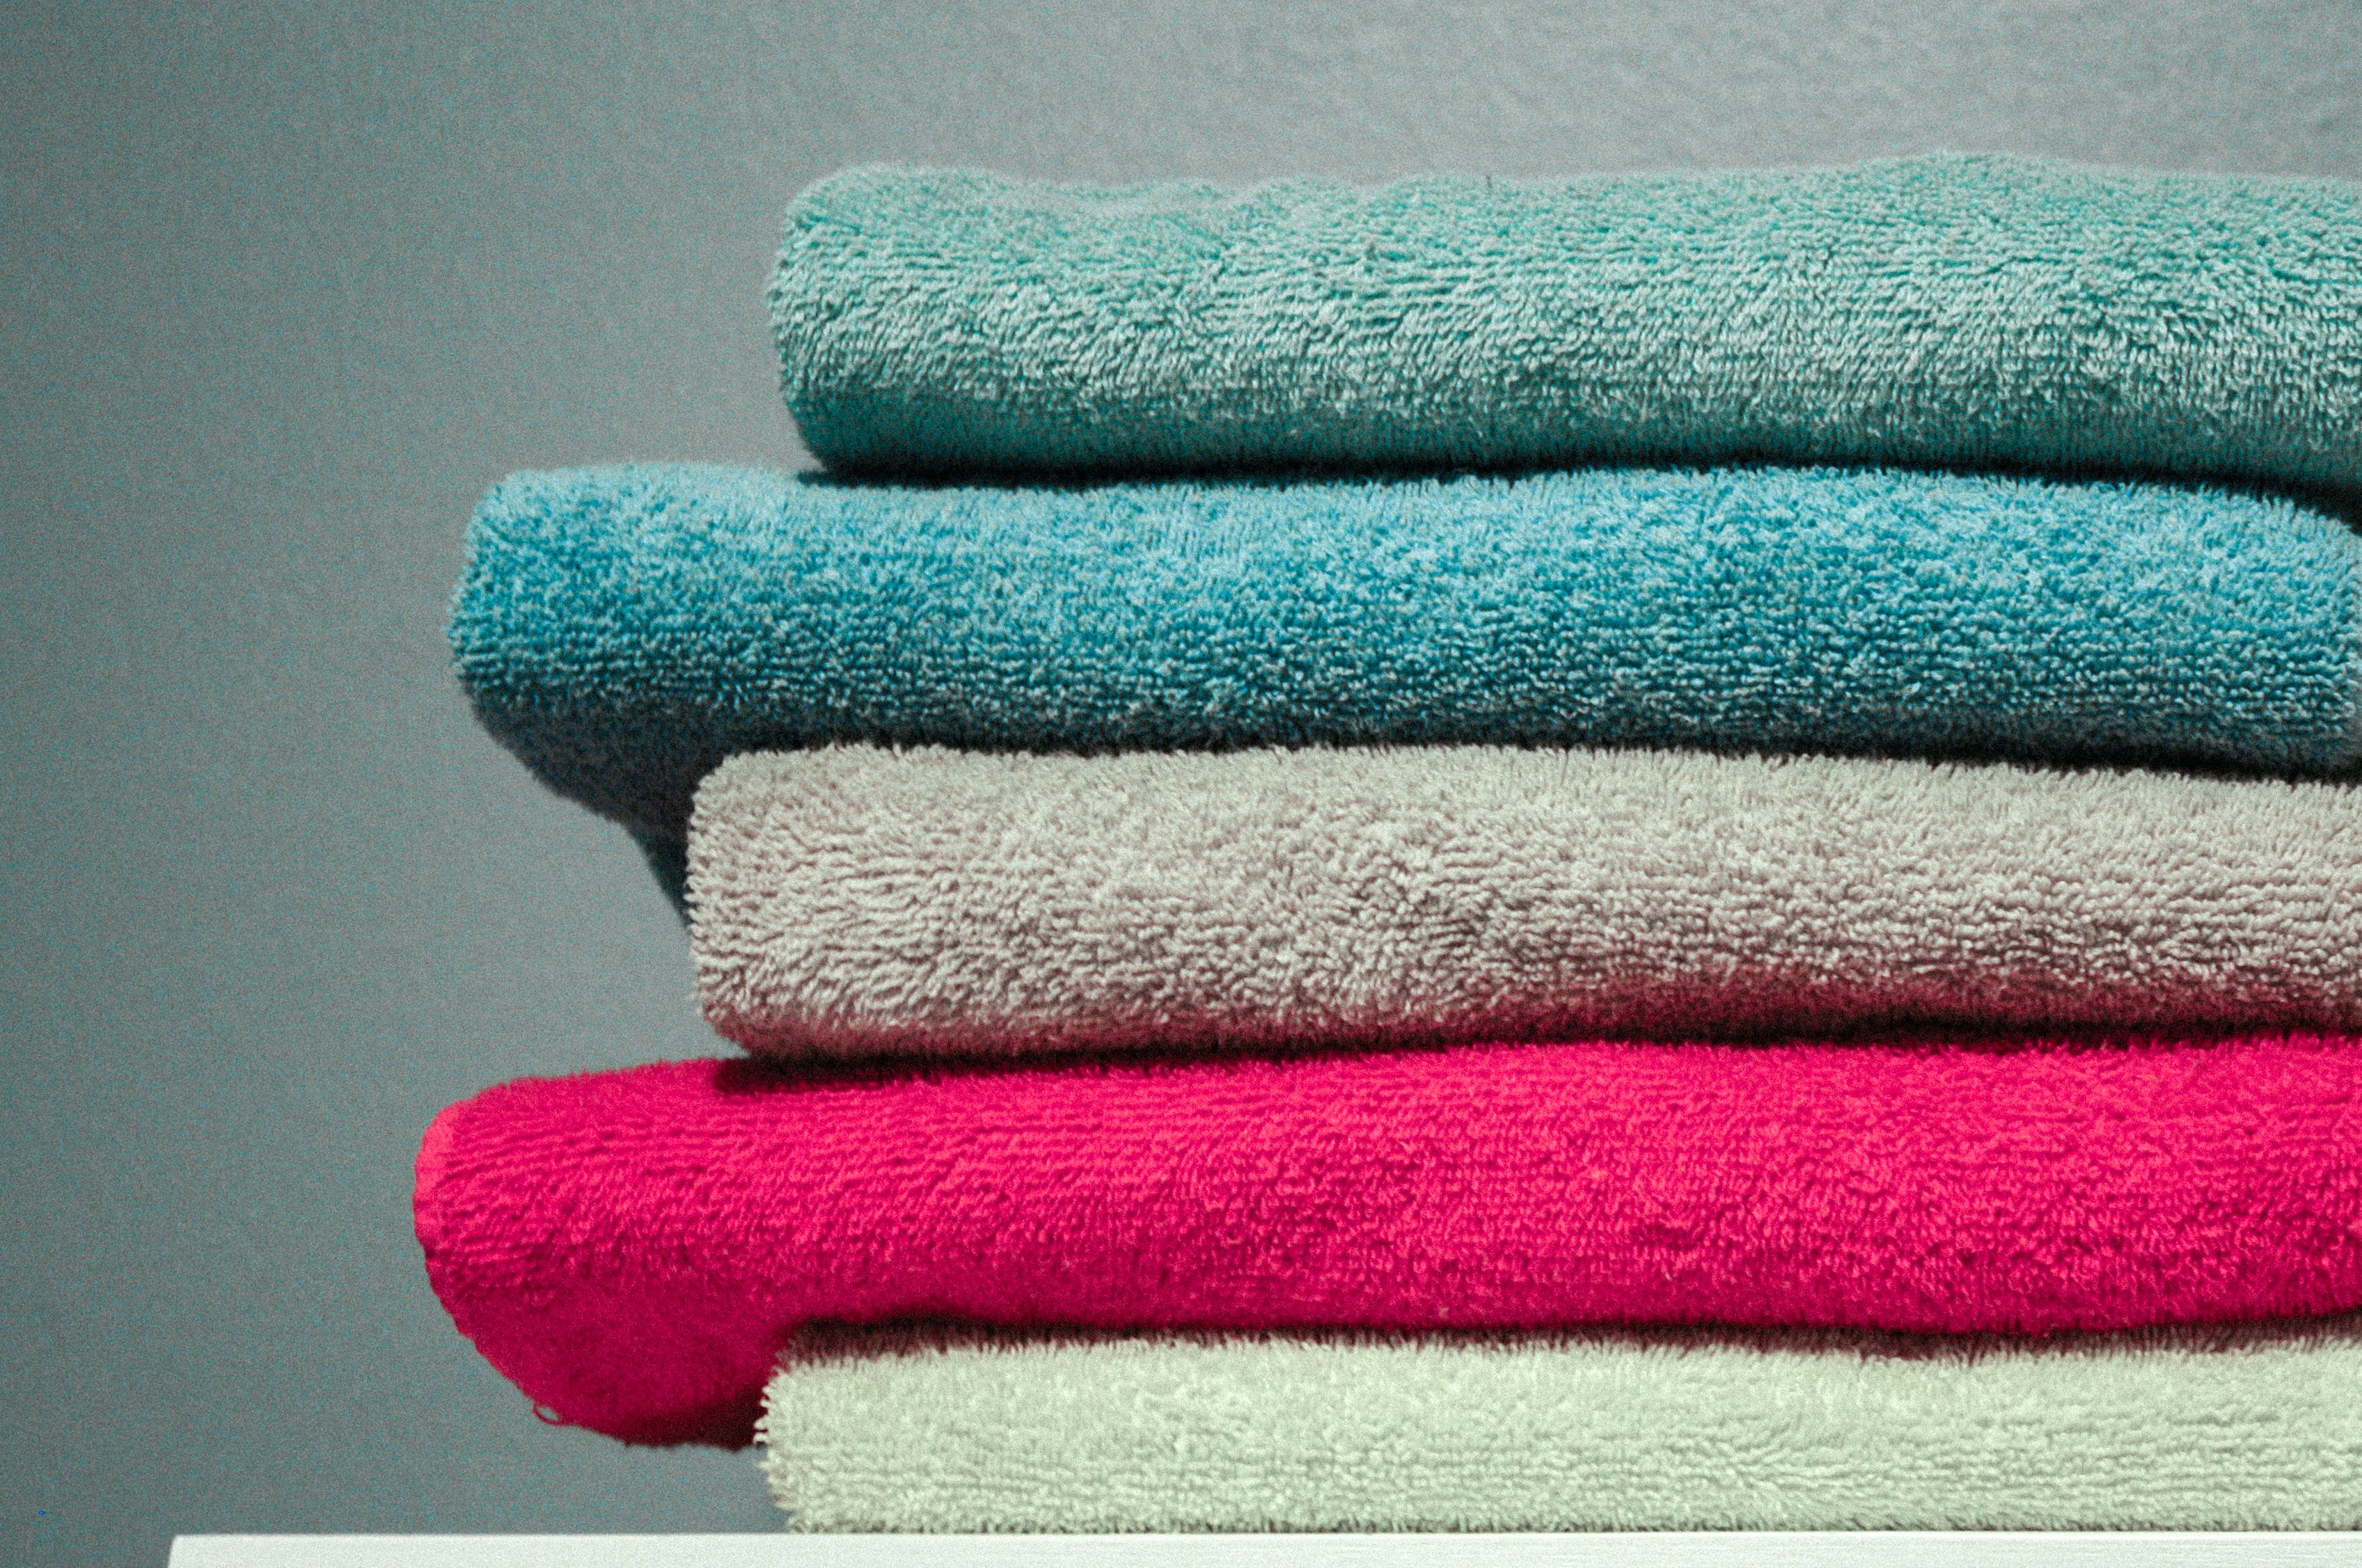 How To Get Mold Out Of Towels With Vinegar